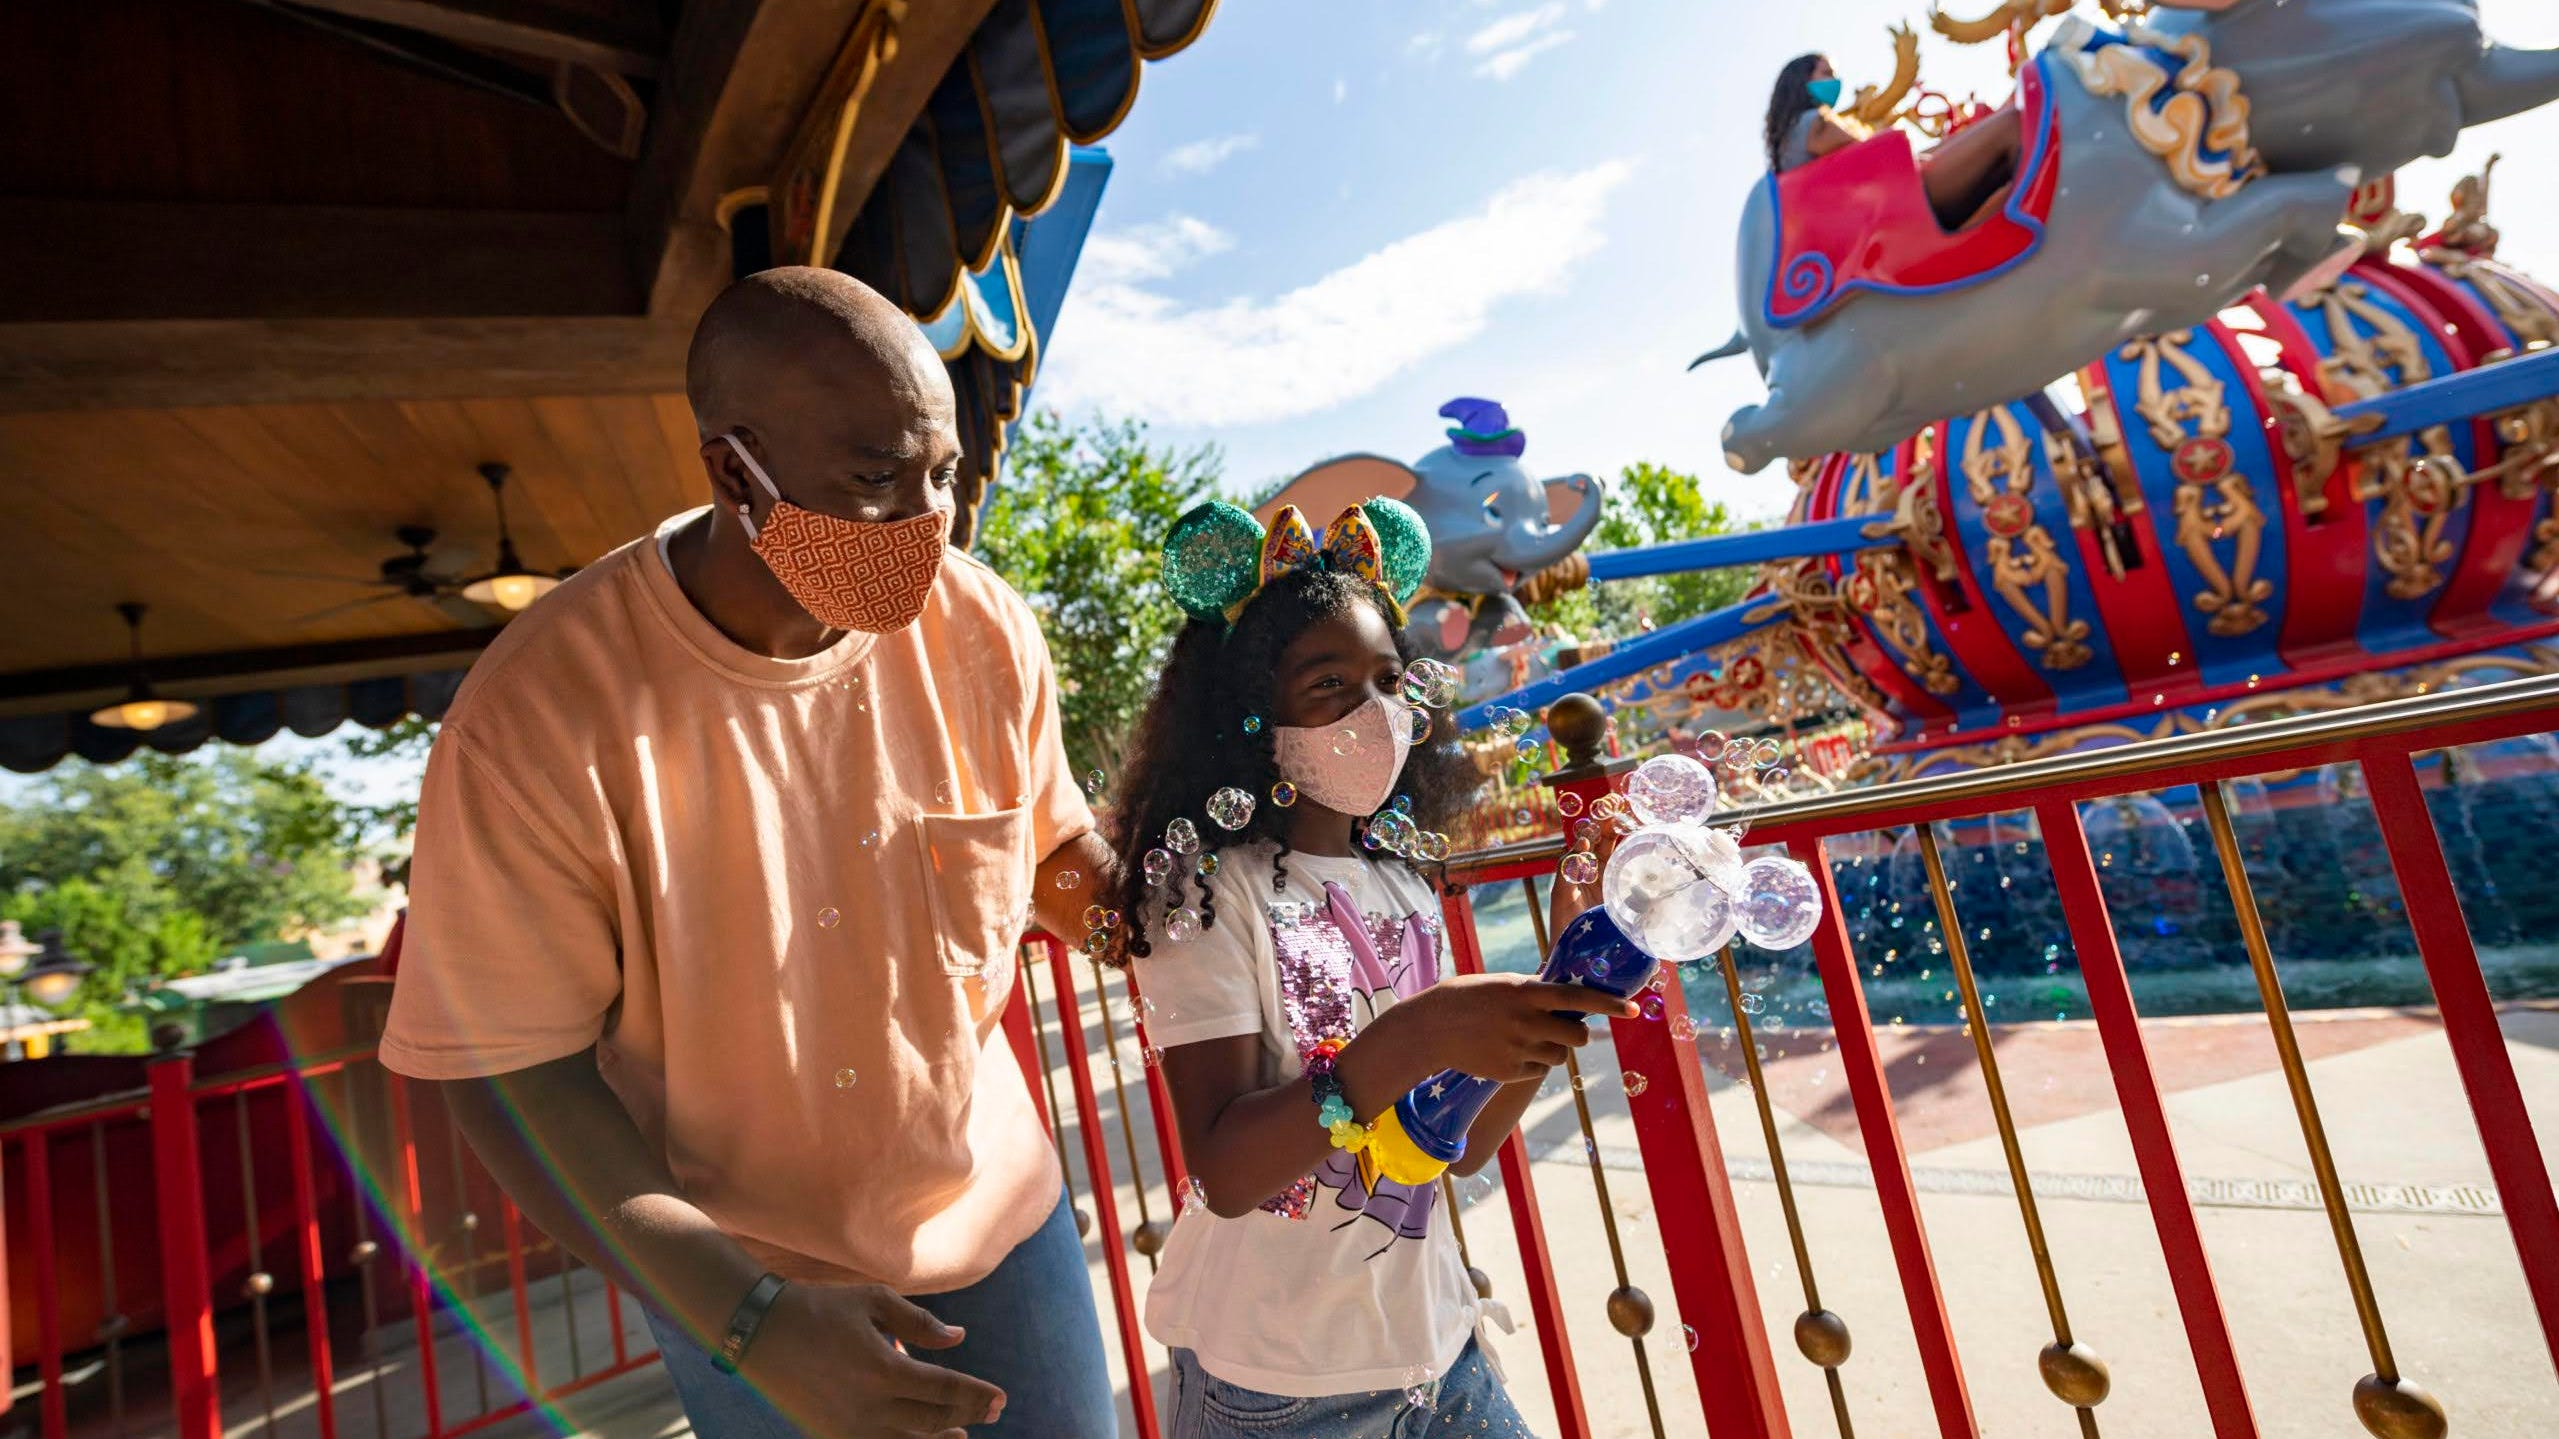 Disneyland reopens: Disney fans thrilled to return to California parks